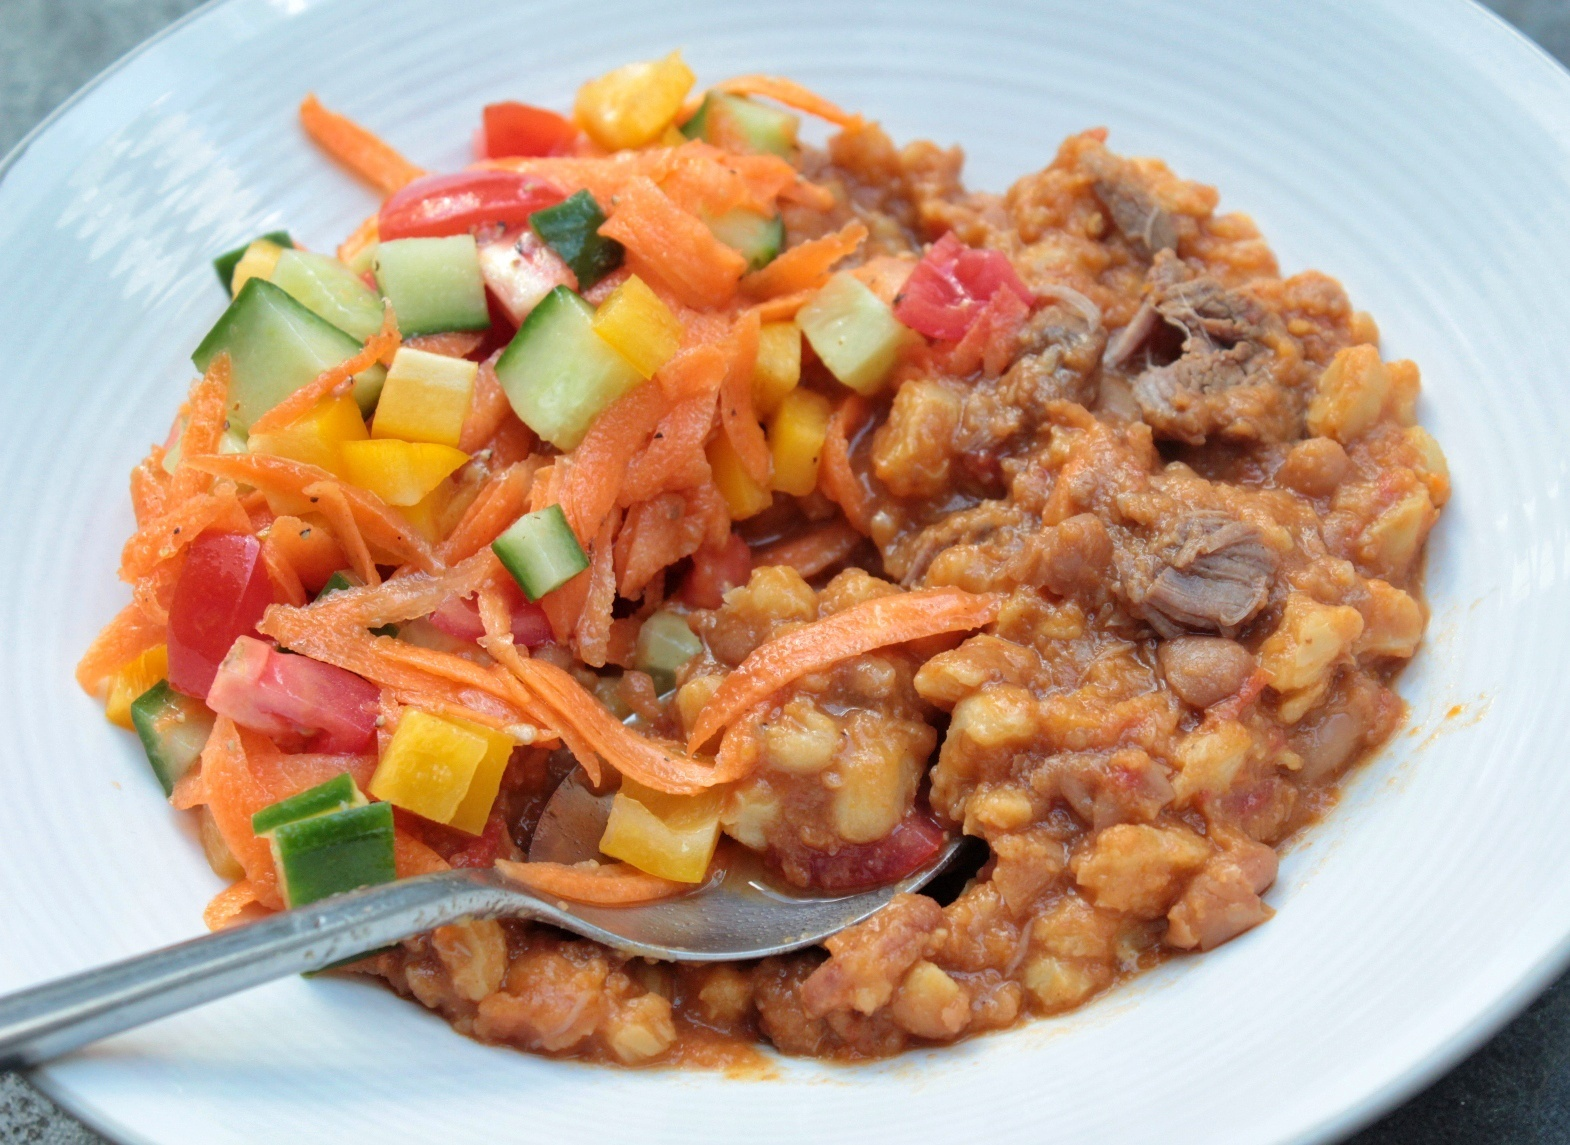 Meaty samp and bean stew